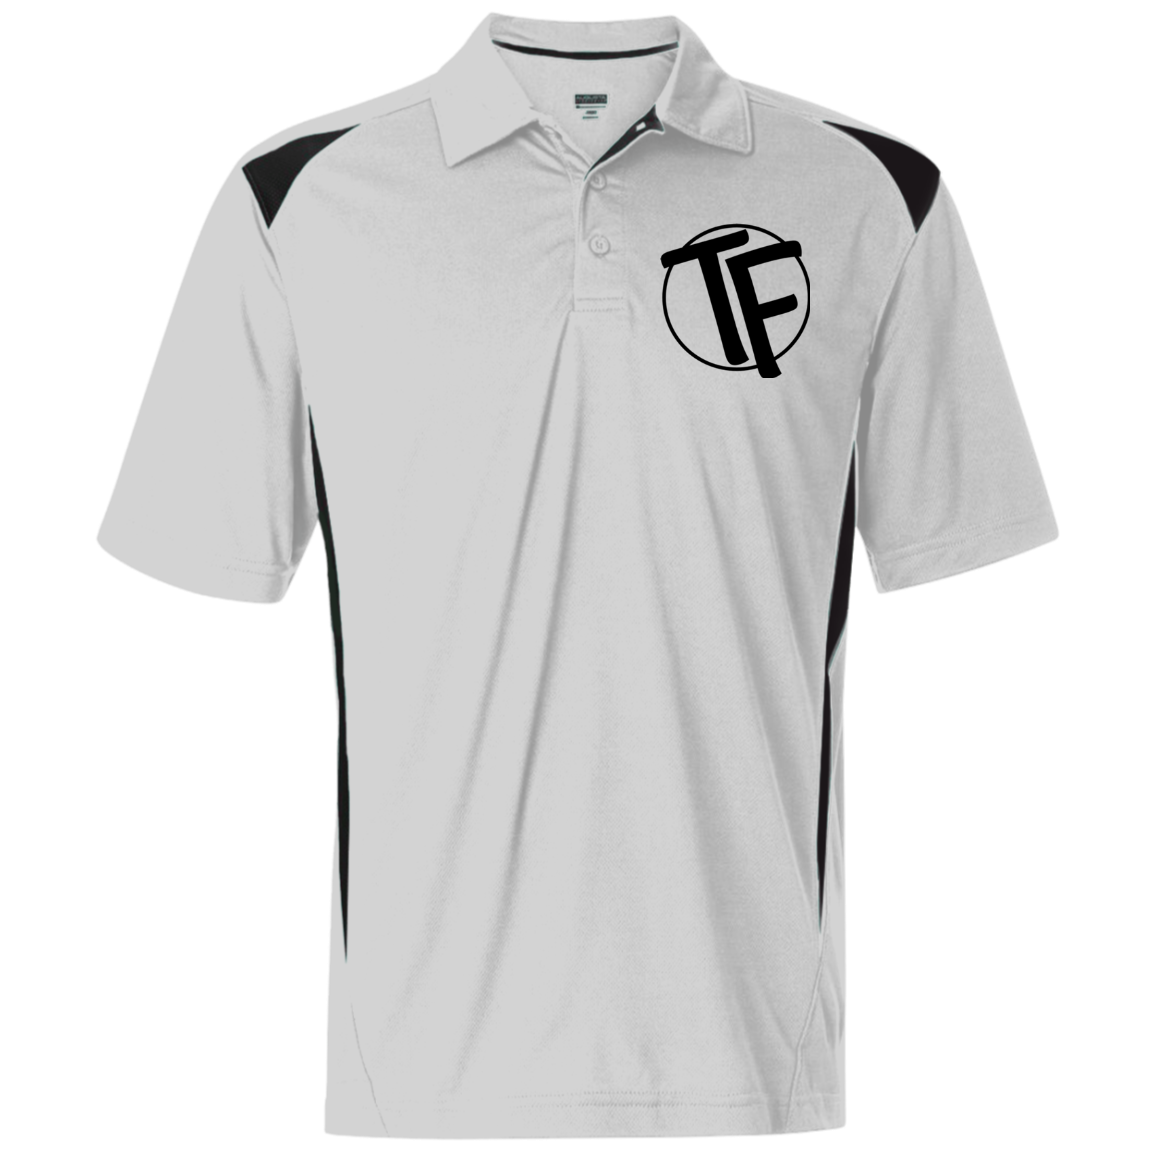 TYFE White/Black Men's Sport Shirt